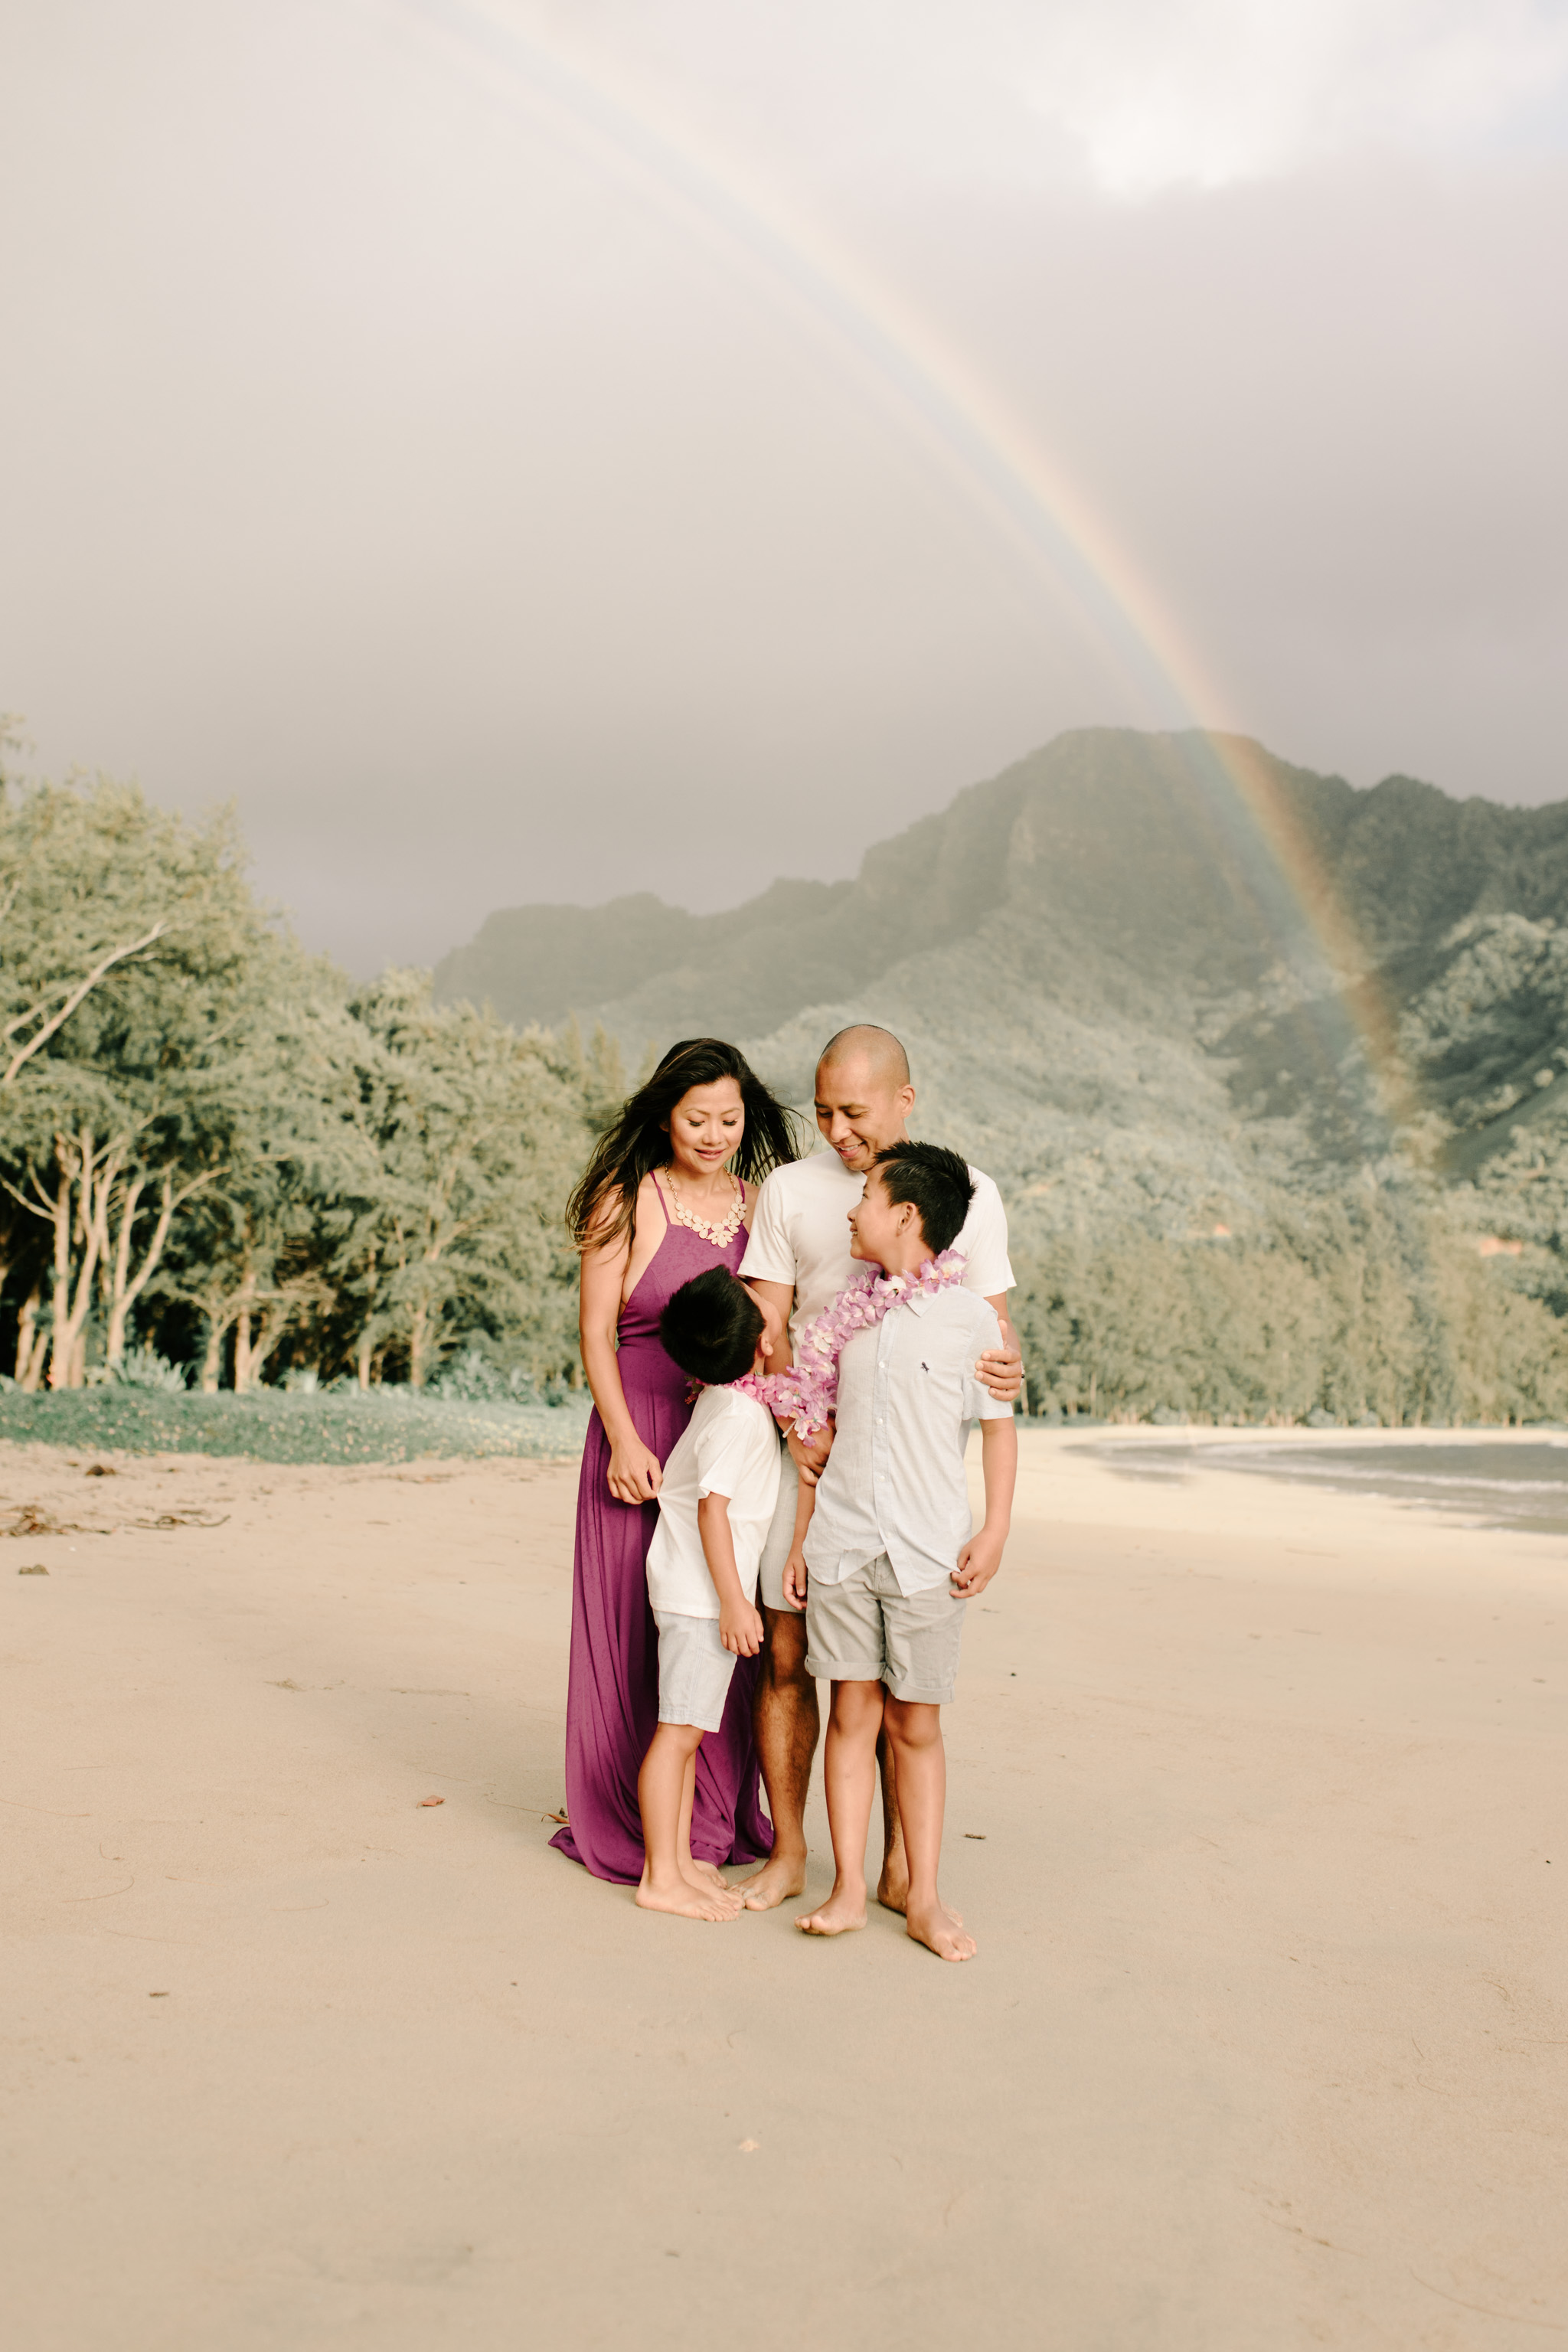 Beautiful Hawaii Family Photos on the Beach with a Gorgeous Rainbow in the Background - Photo by Oahu Family Photographer Desiree Leilani